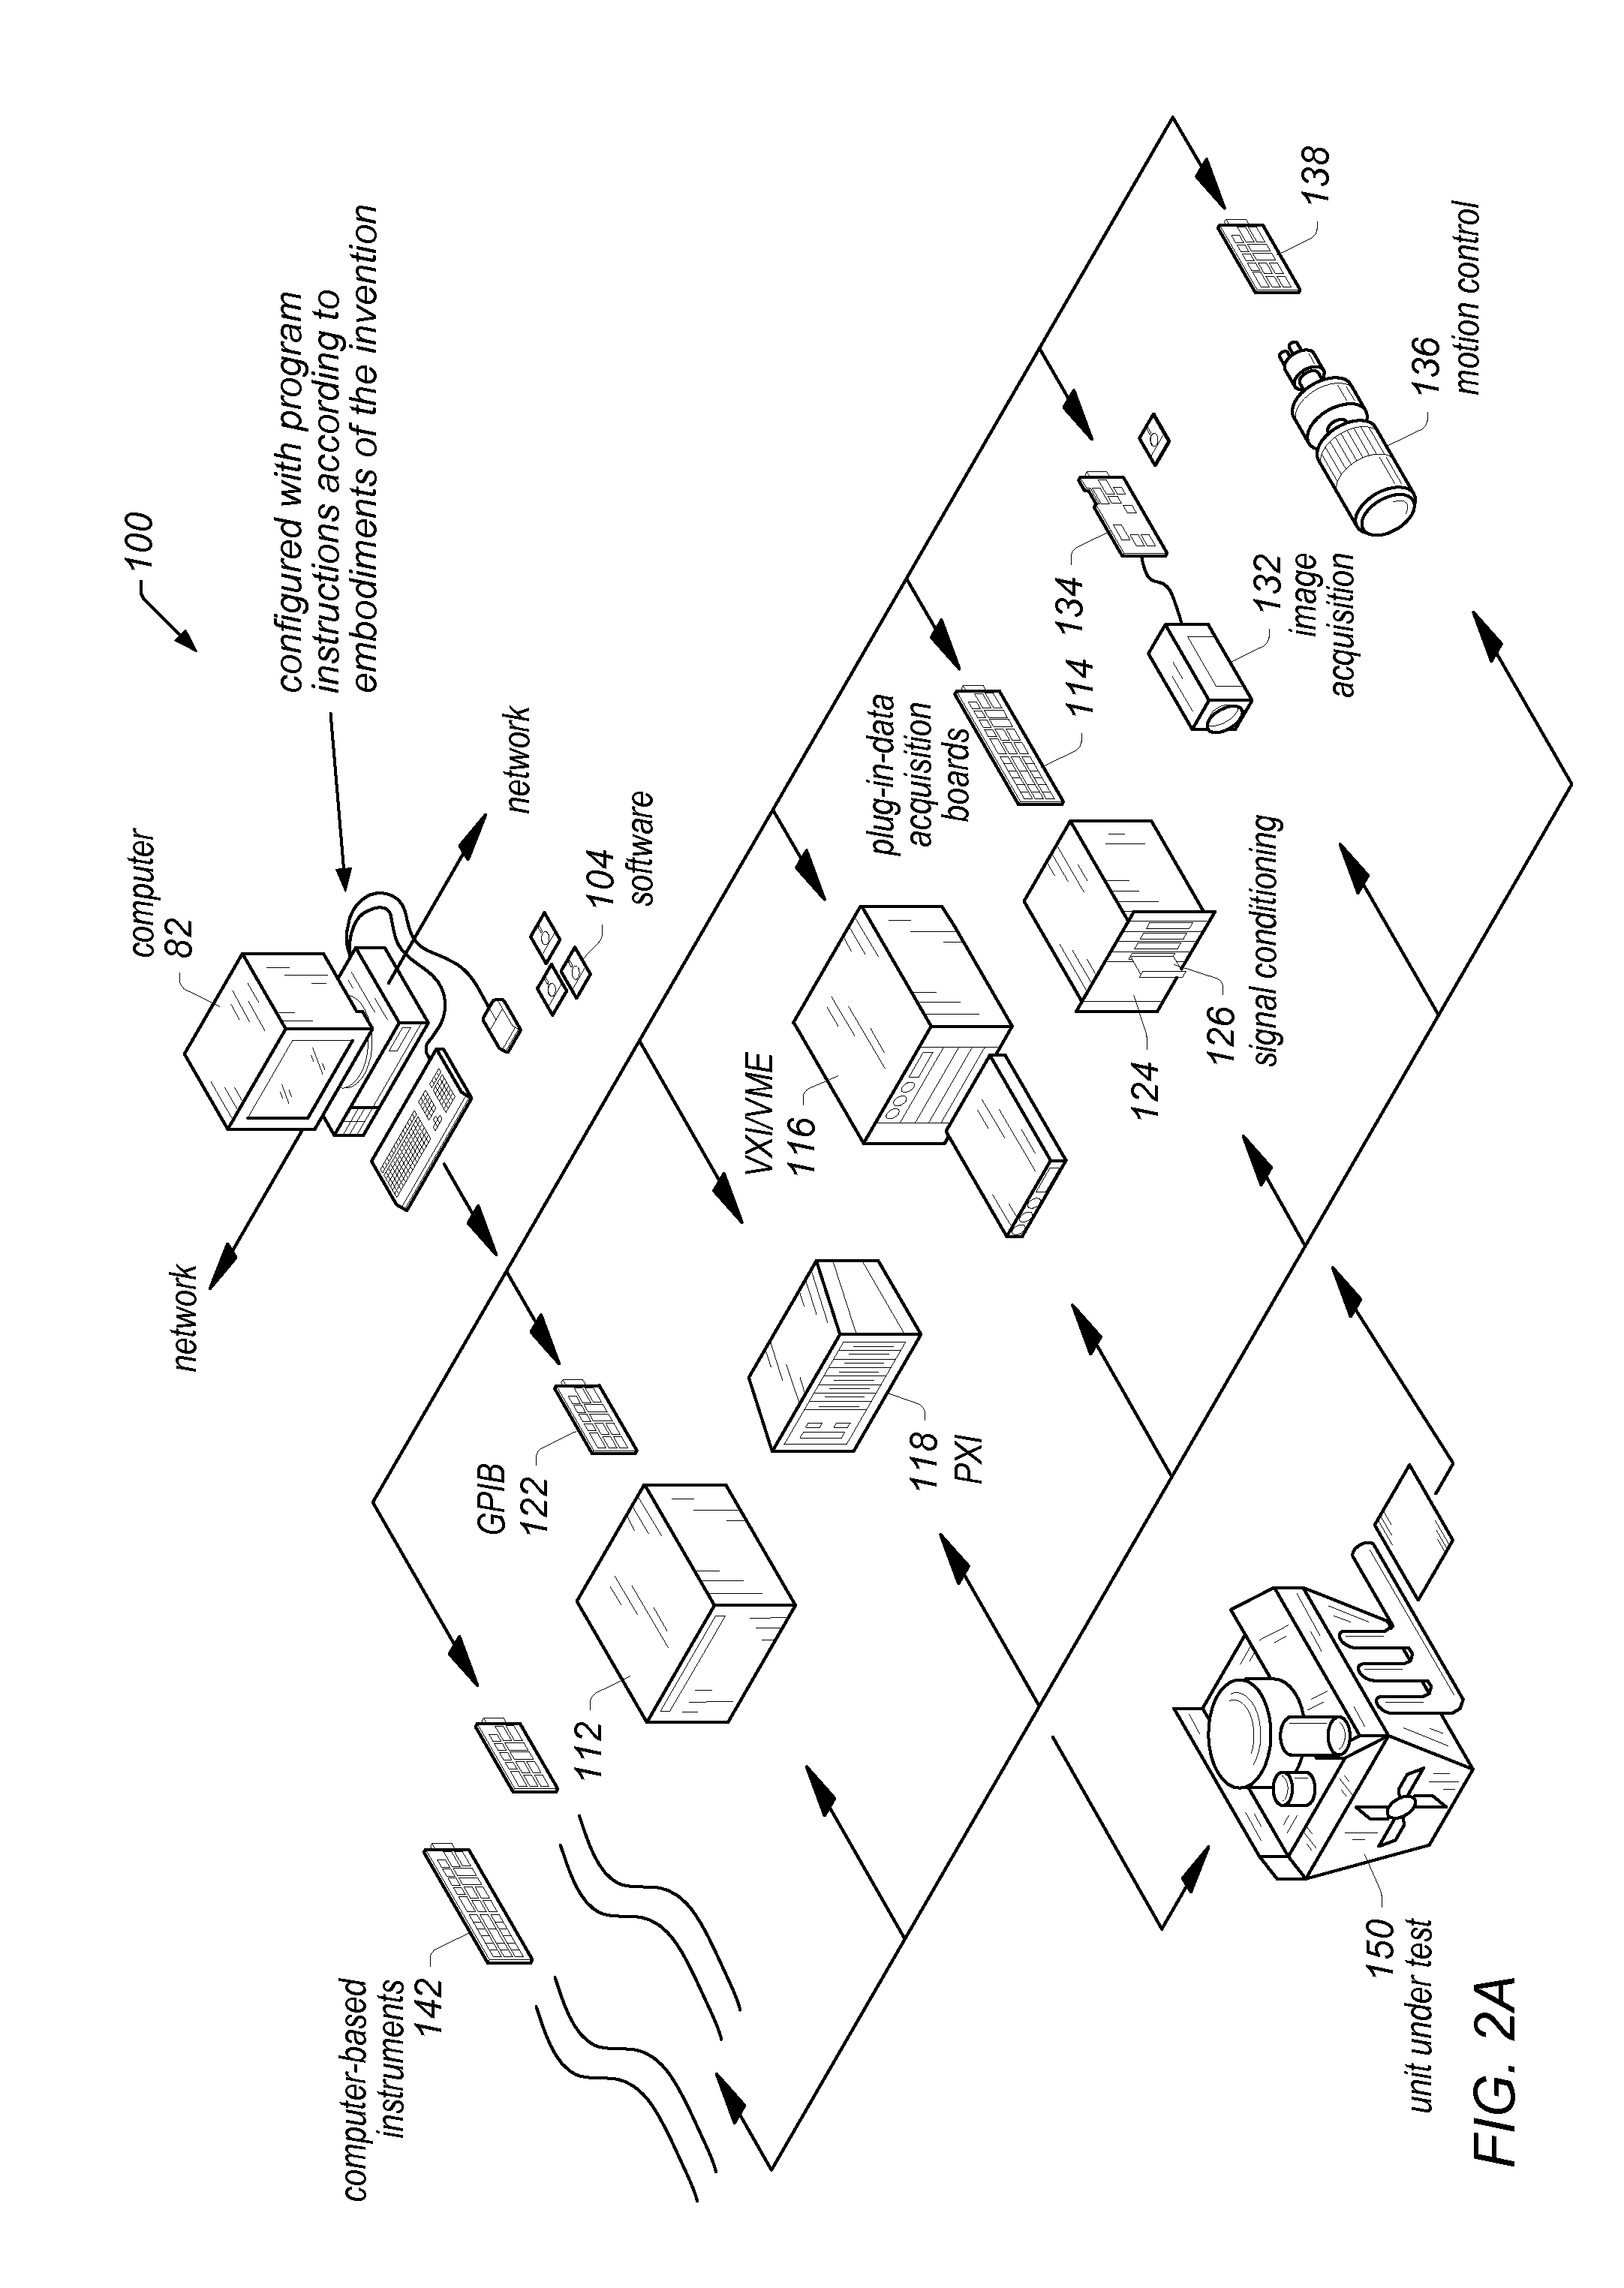 patent us20120030646 developing programs in a graphical 1A 125V Fuse patent drawing